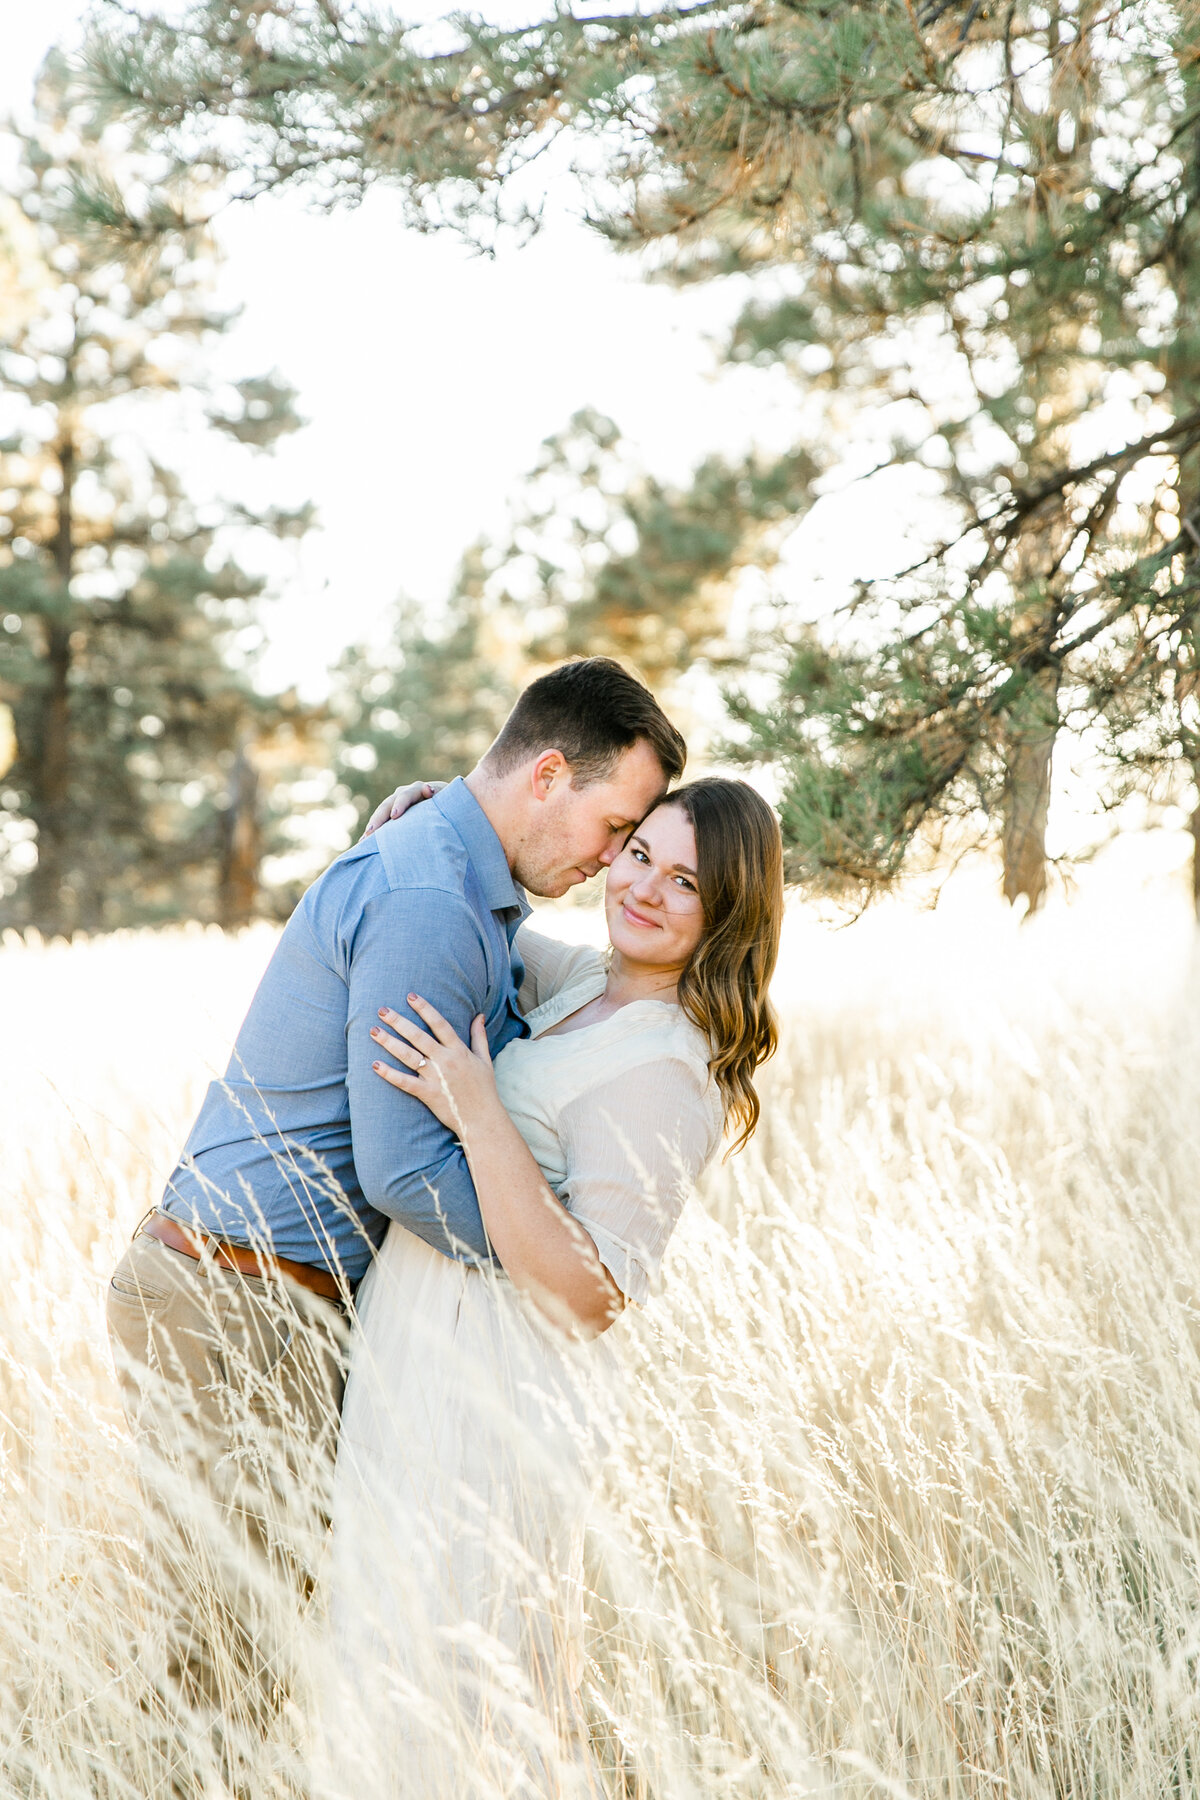 Karlie Colleen Photography - Flagstaff Arizona Engagement Photographer - Britt & Josh -149